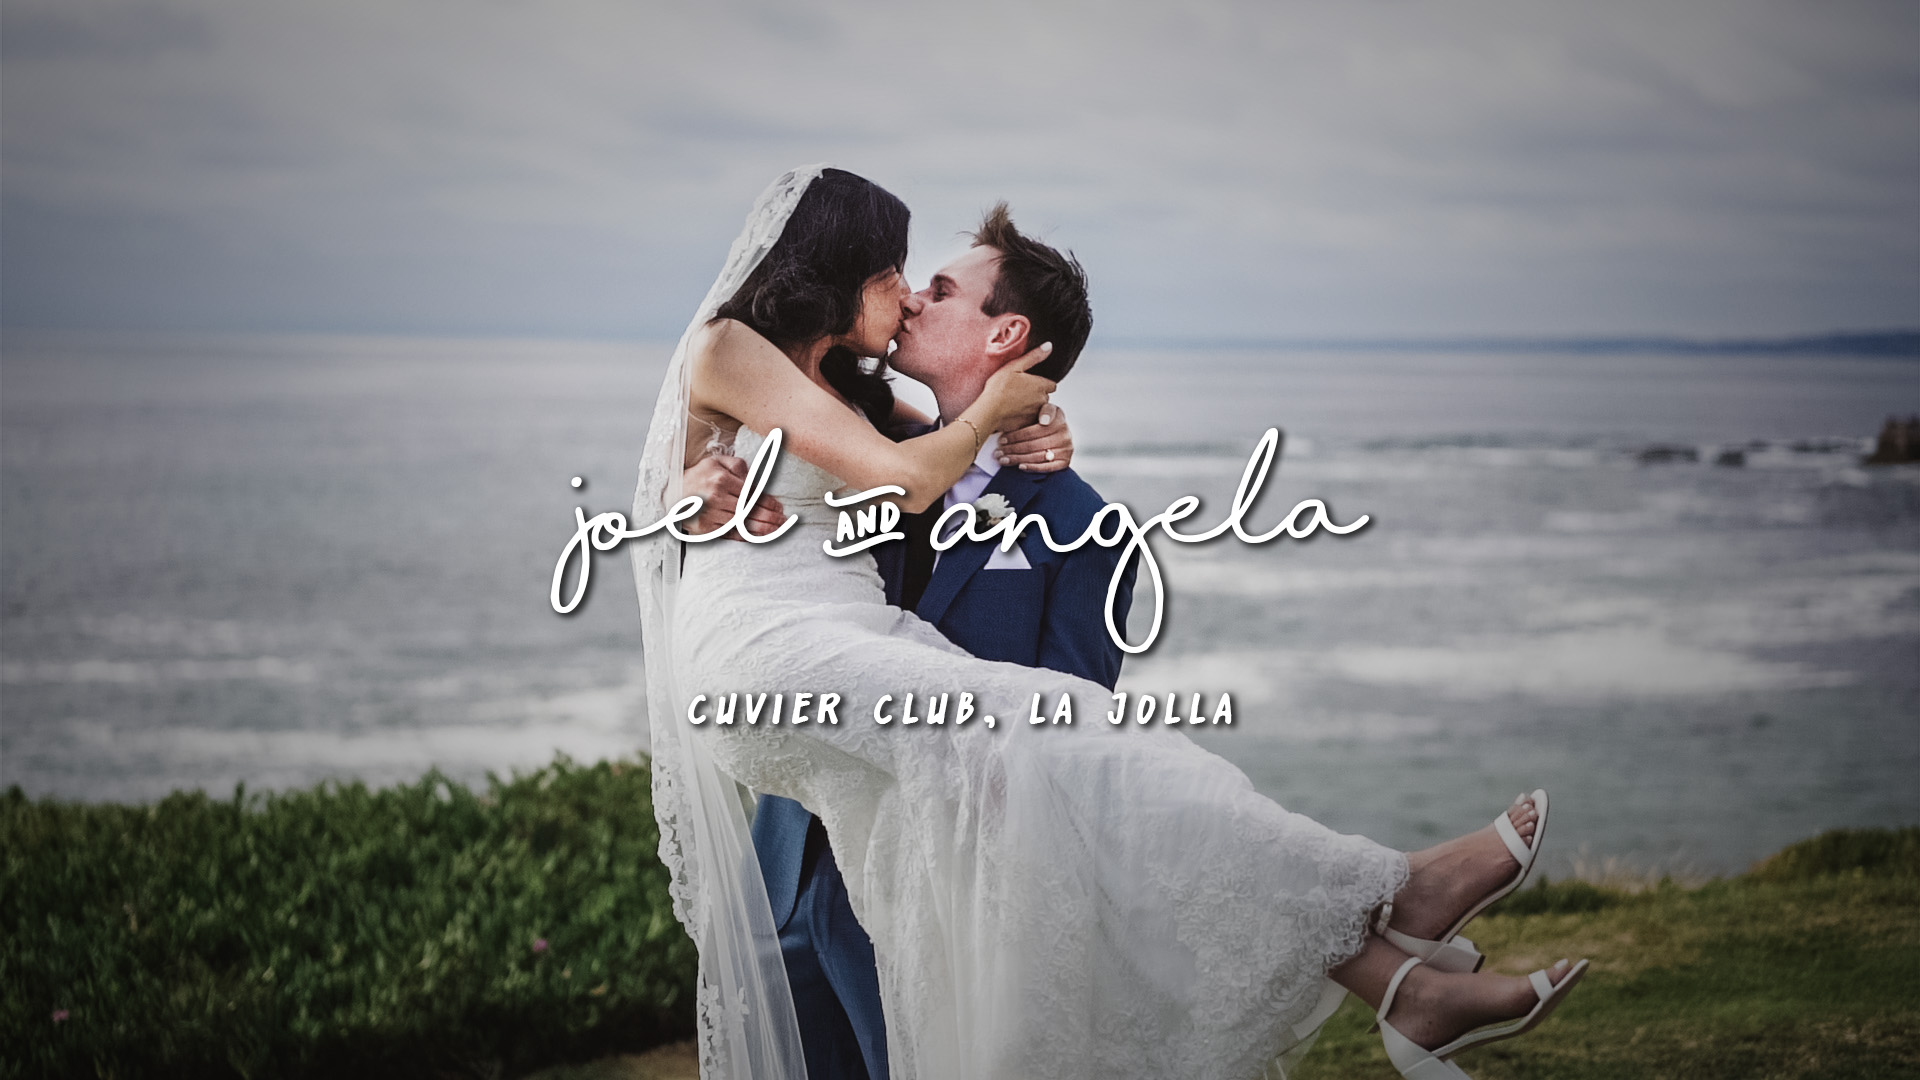 Joel + Angela | San Diego, California | Cuvier Club